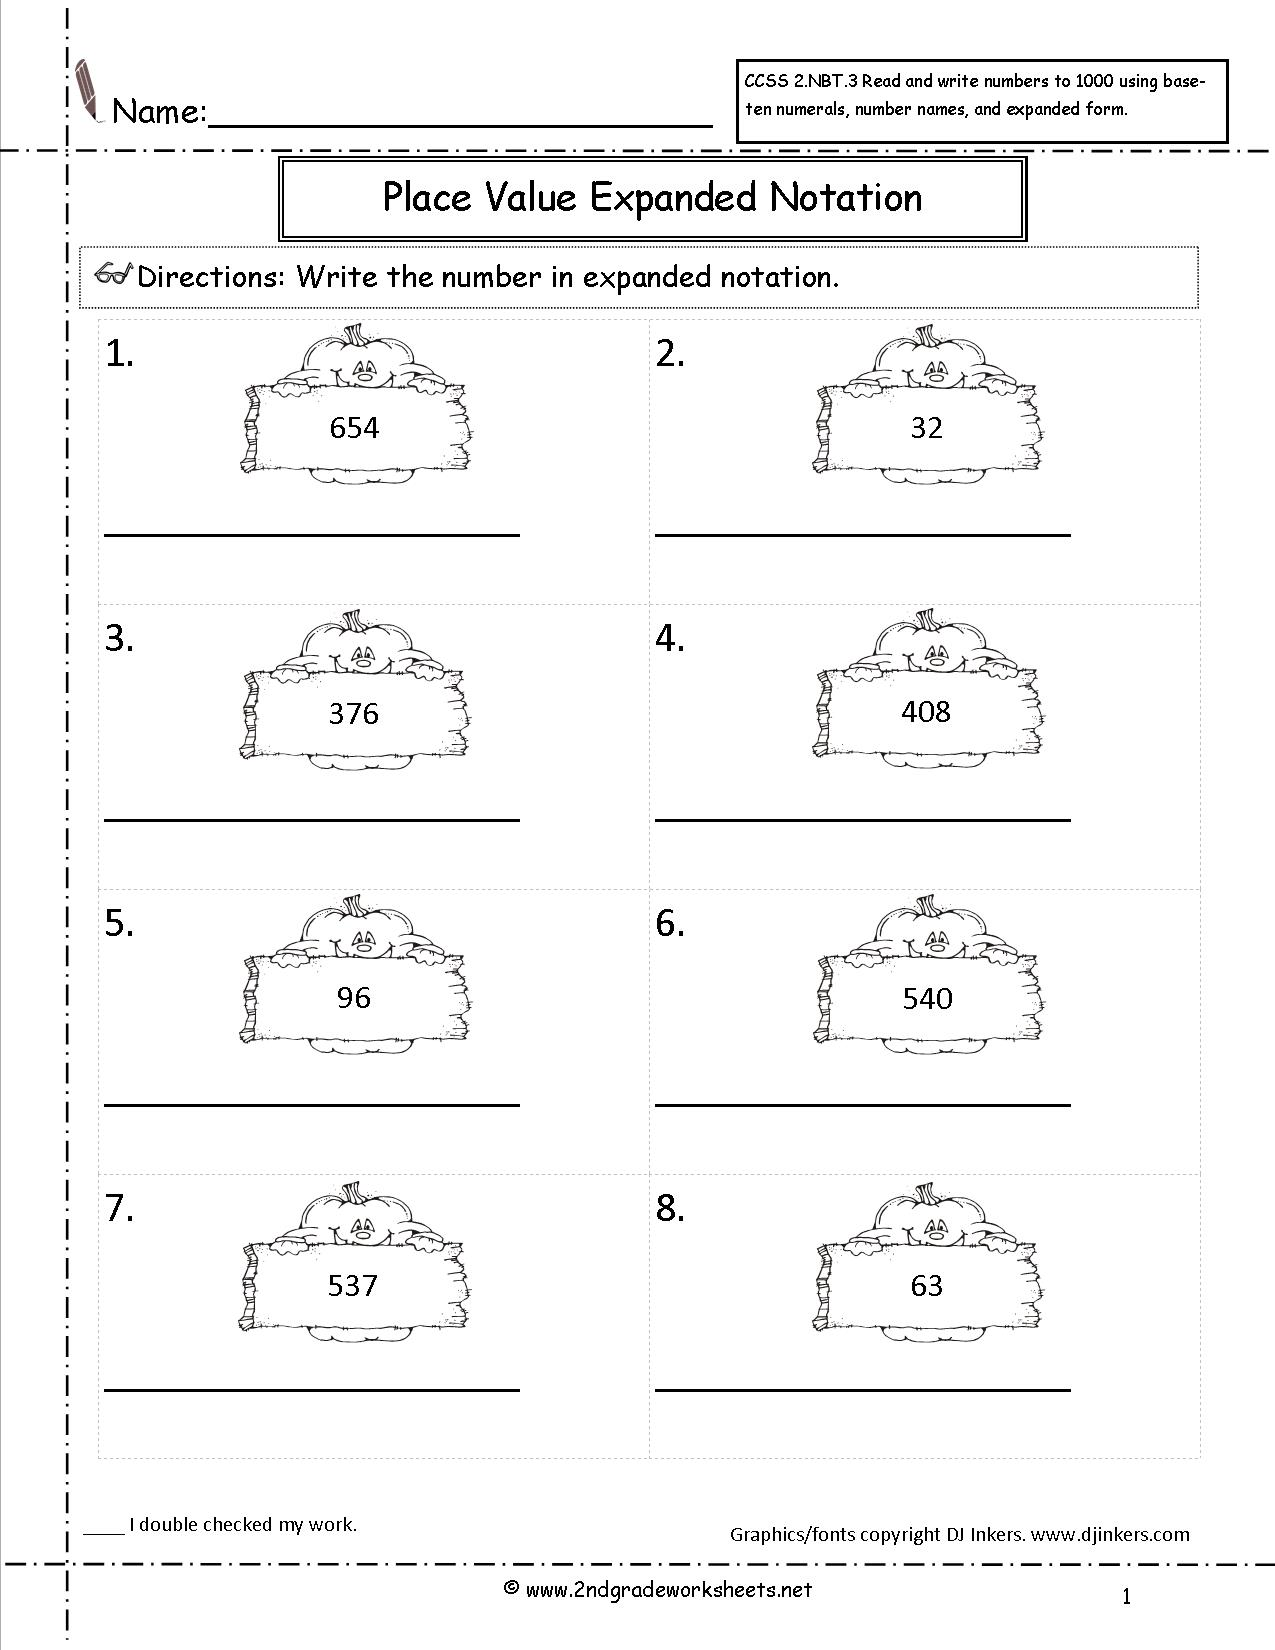 Place Value Notation Worksheet